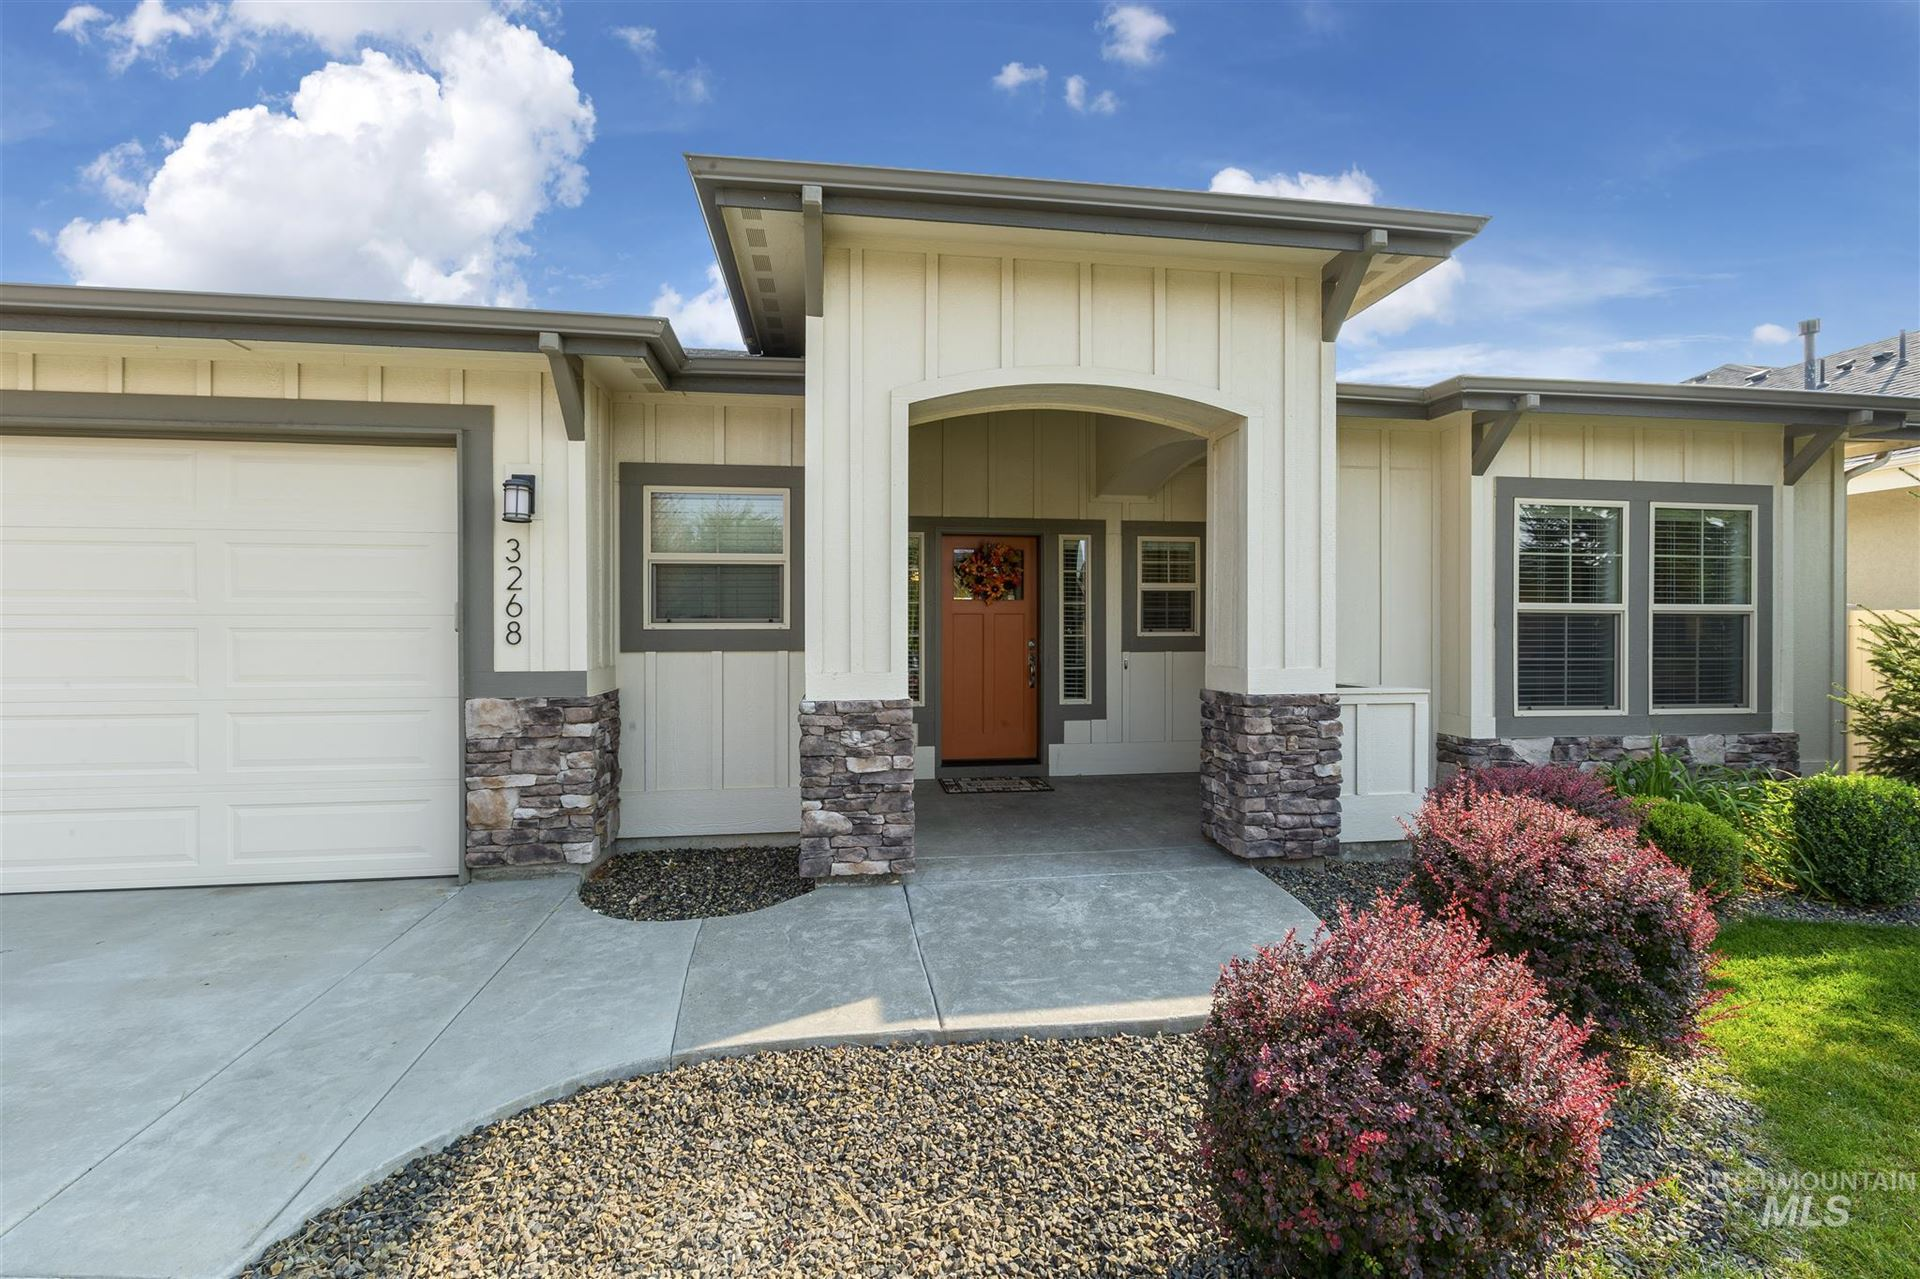 Photo of 3268 S Wallberg Ave, Eagle, ID 83616 (MLS # 98784217)